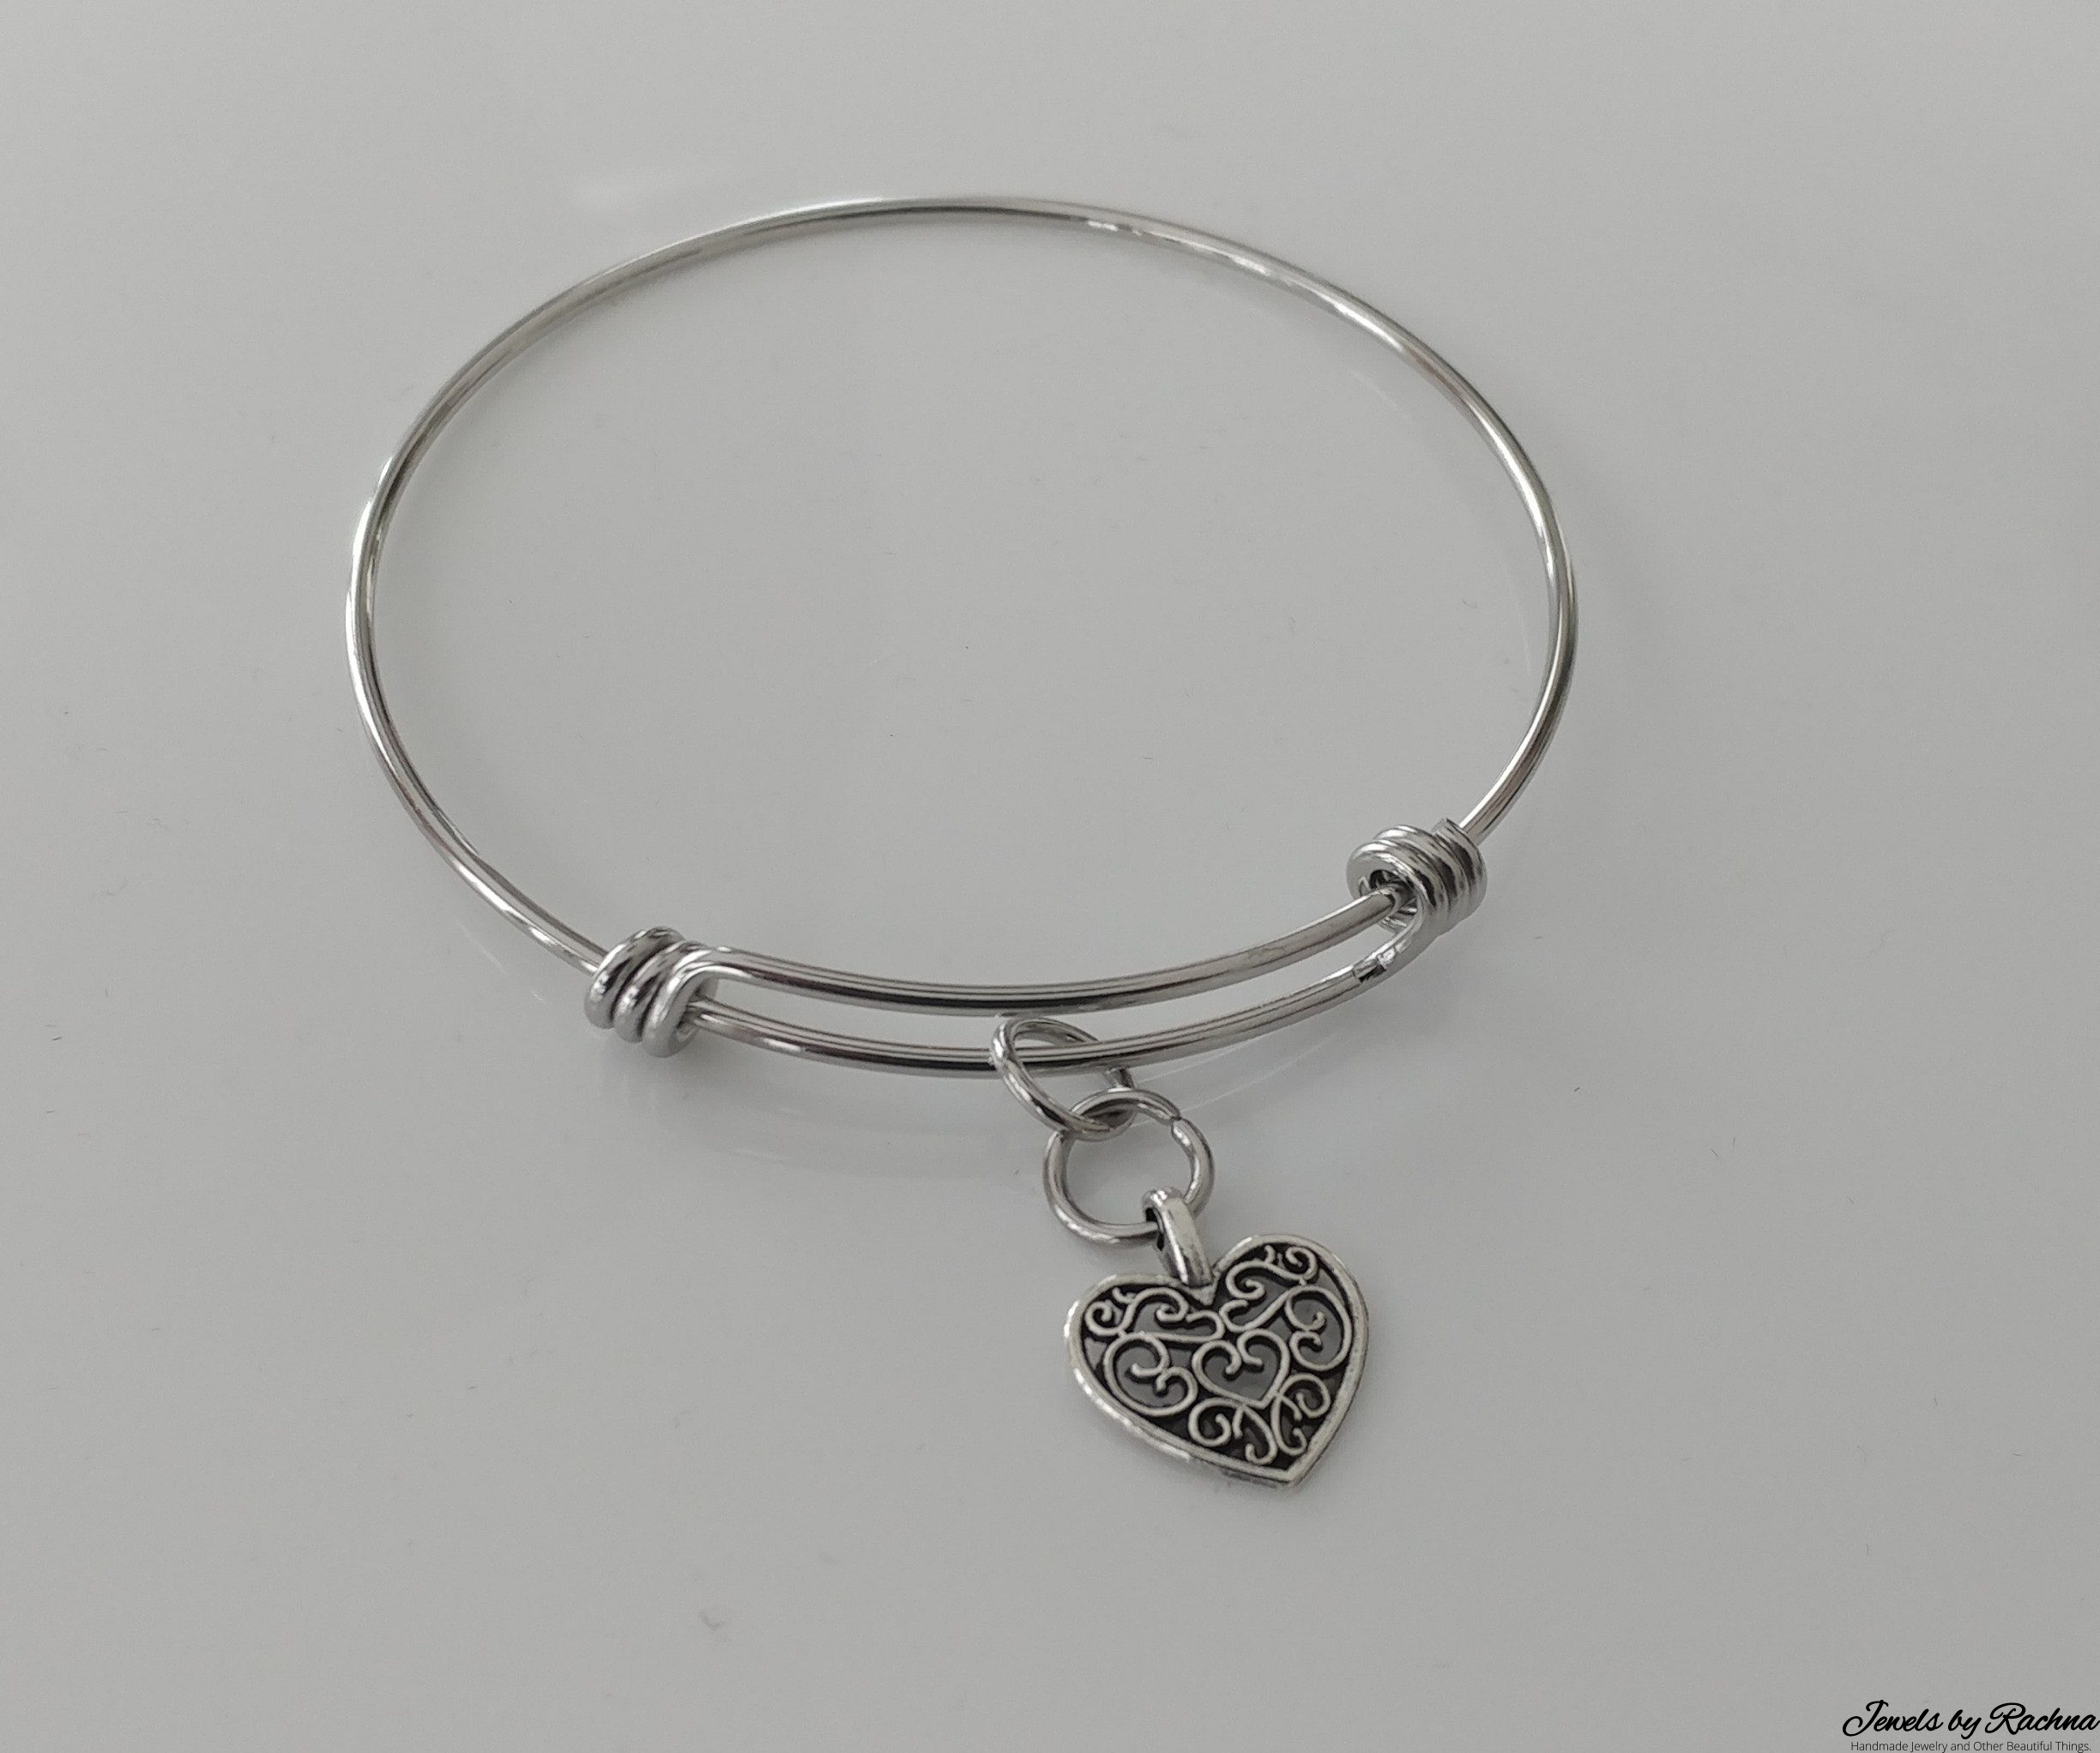 slider and butterfly clasp bracelet adjustable personalised bracelets bangles handstamped bangle